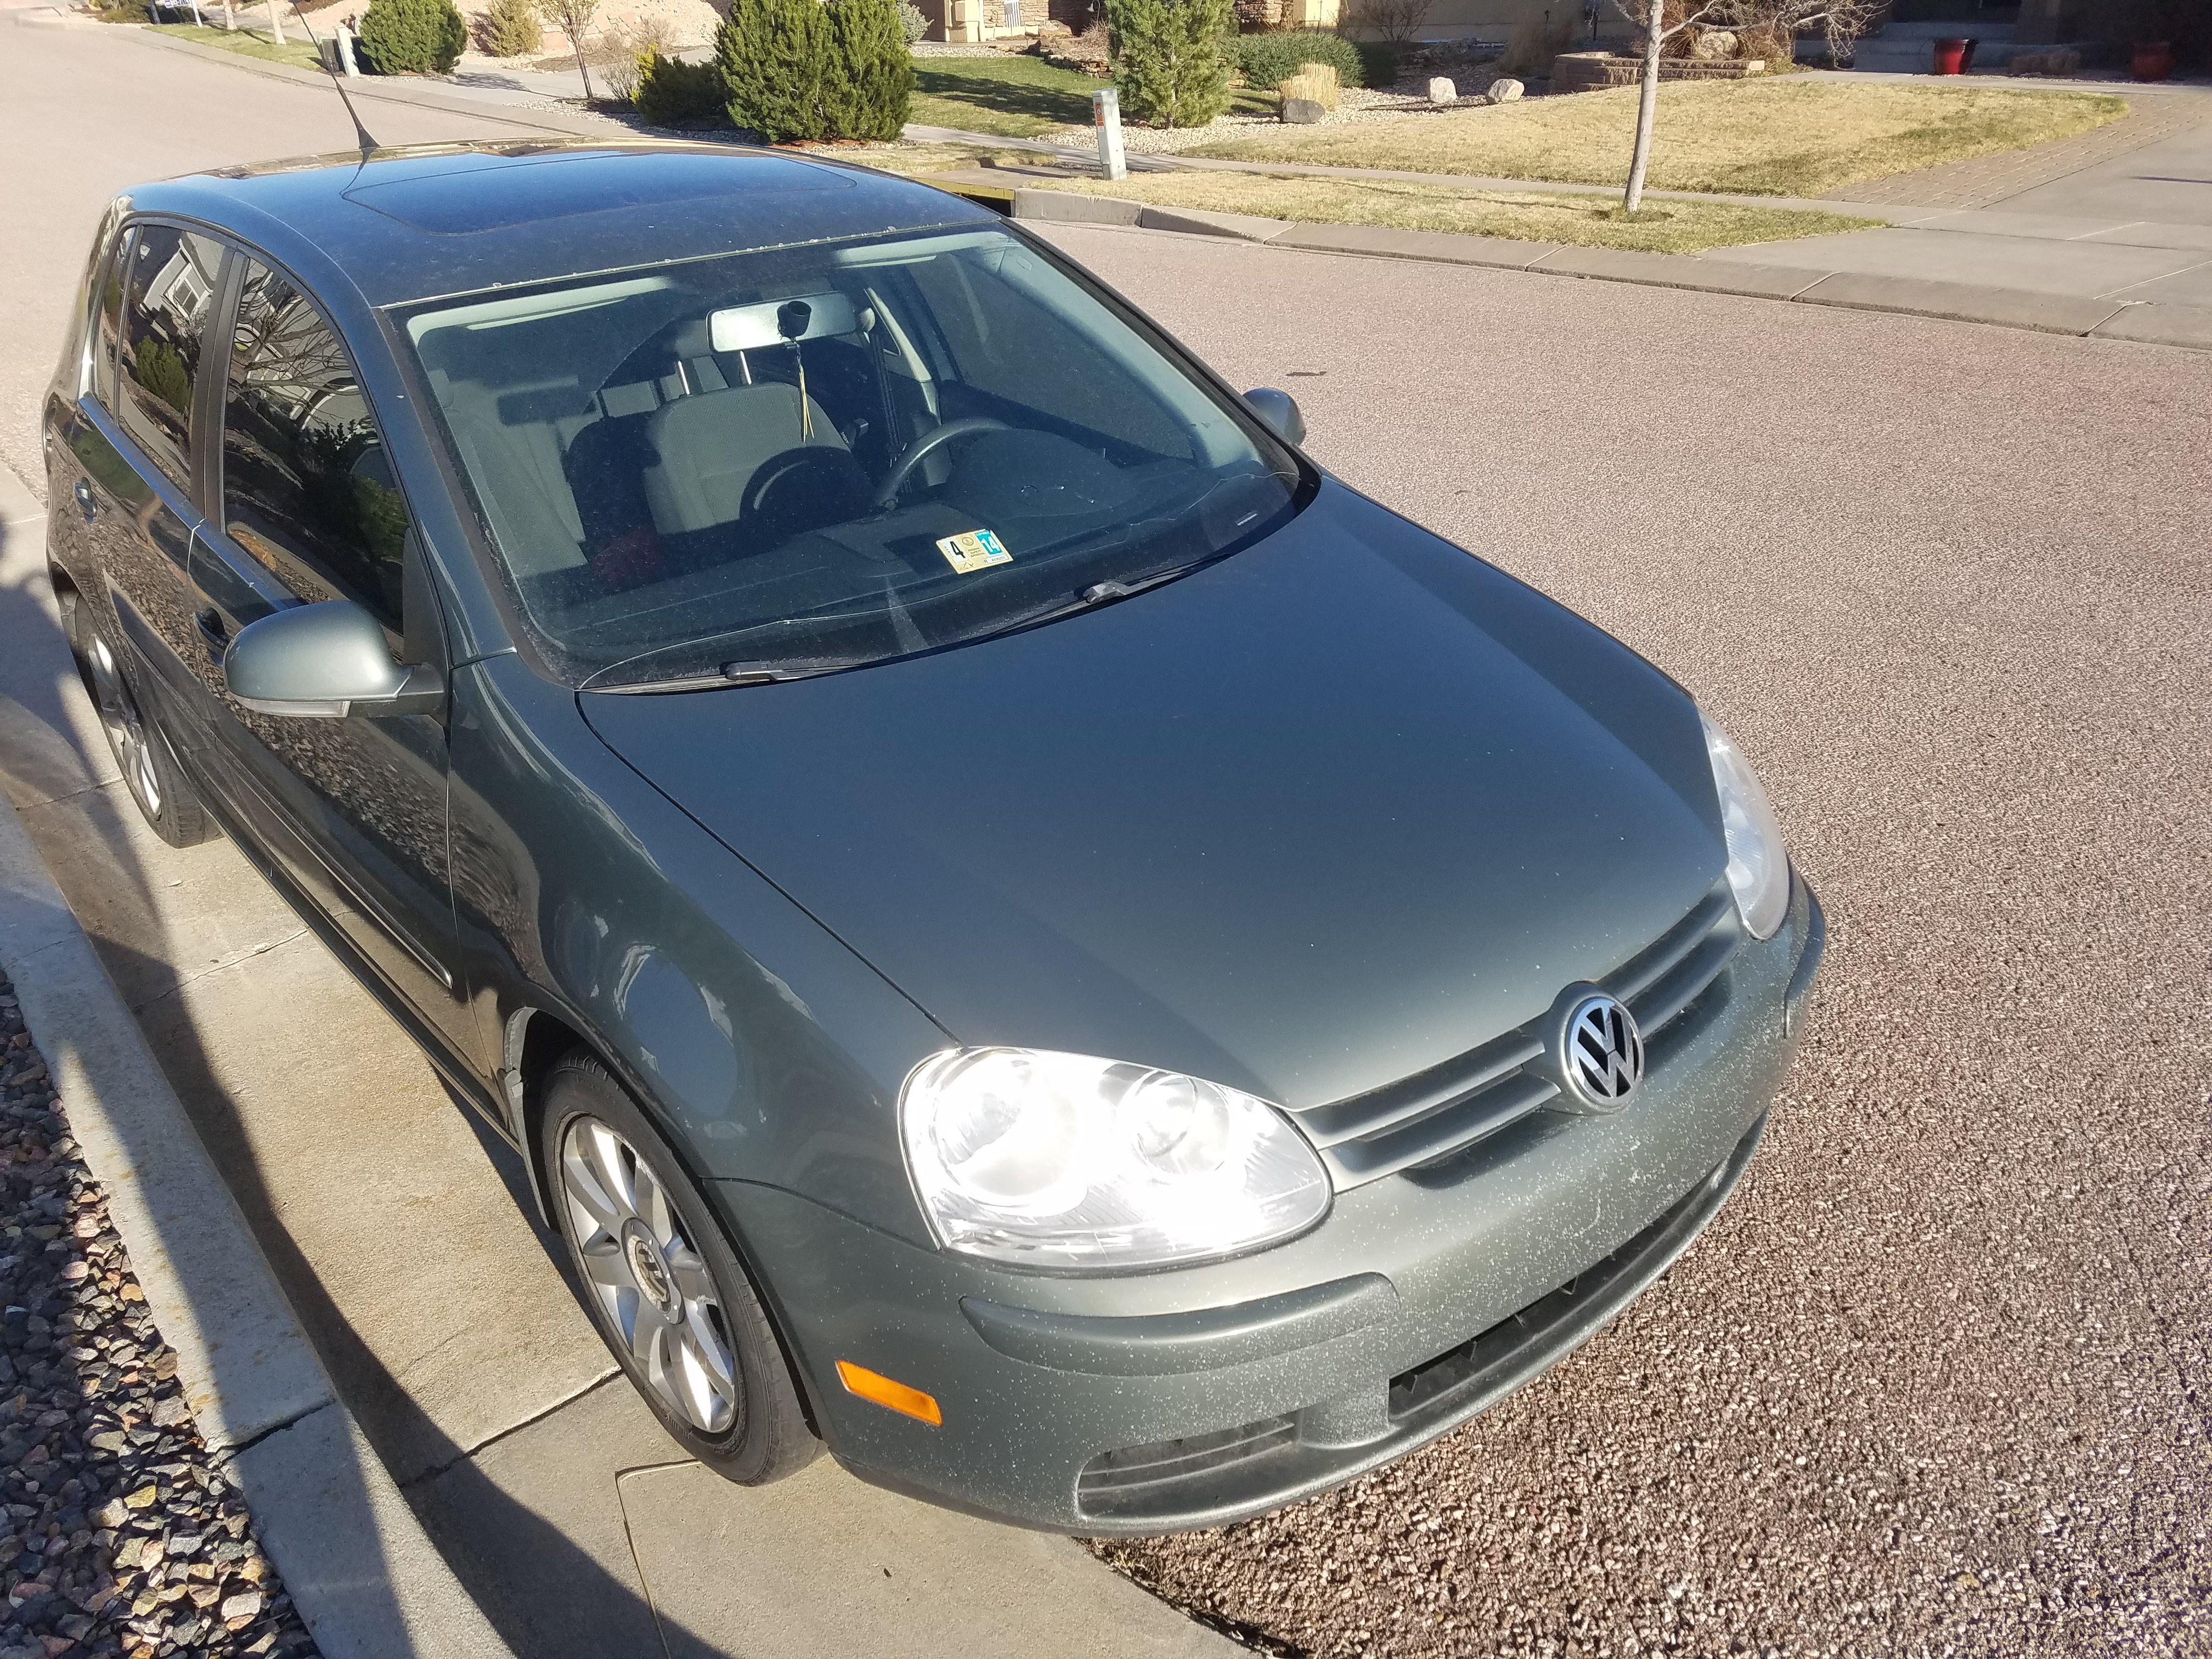 beetle springs lot carfinder certificate ended online en on co jetta copart of volkswagen auctions tur afbc title colorado auction vin auto